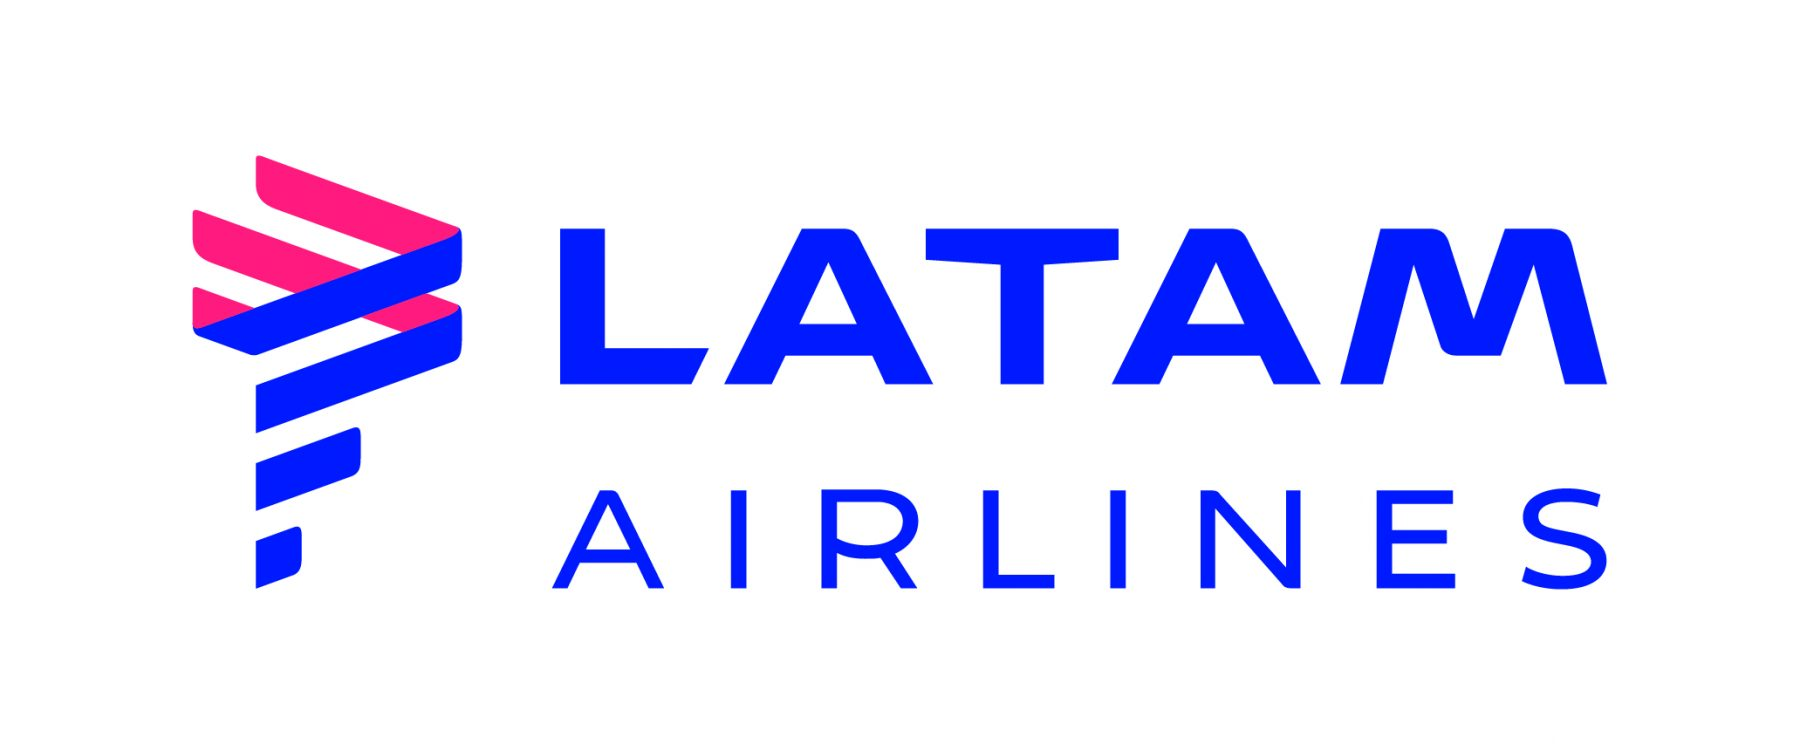 LATAM Airlines Positive JEPG